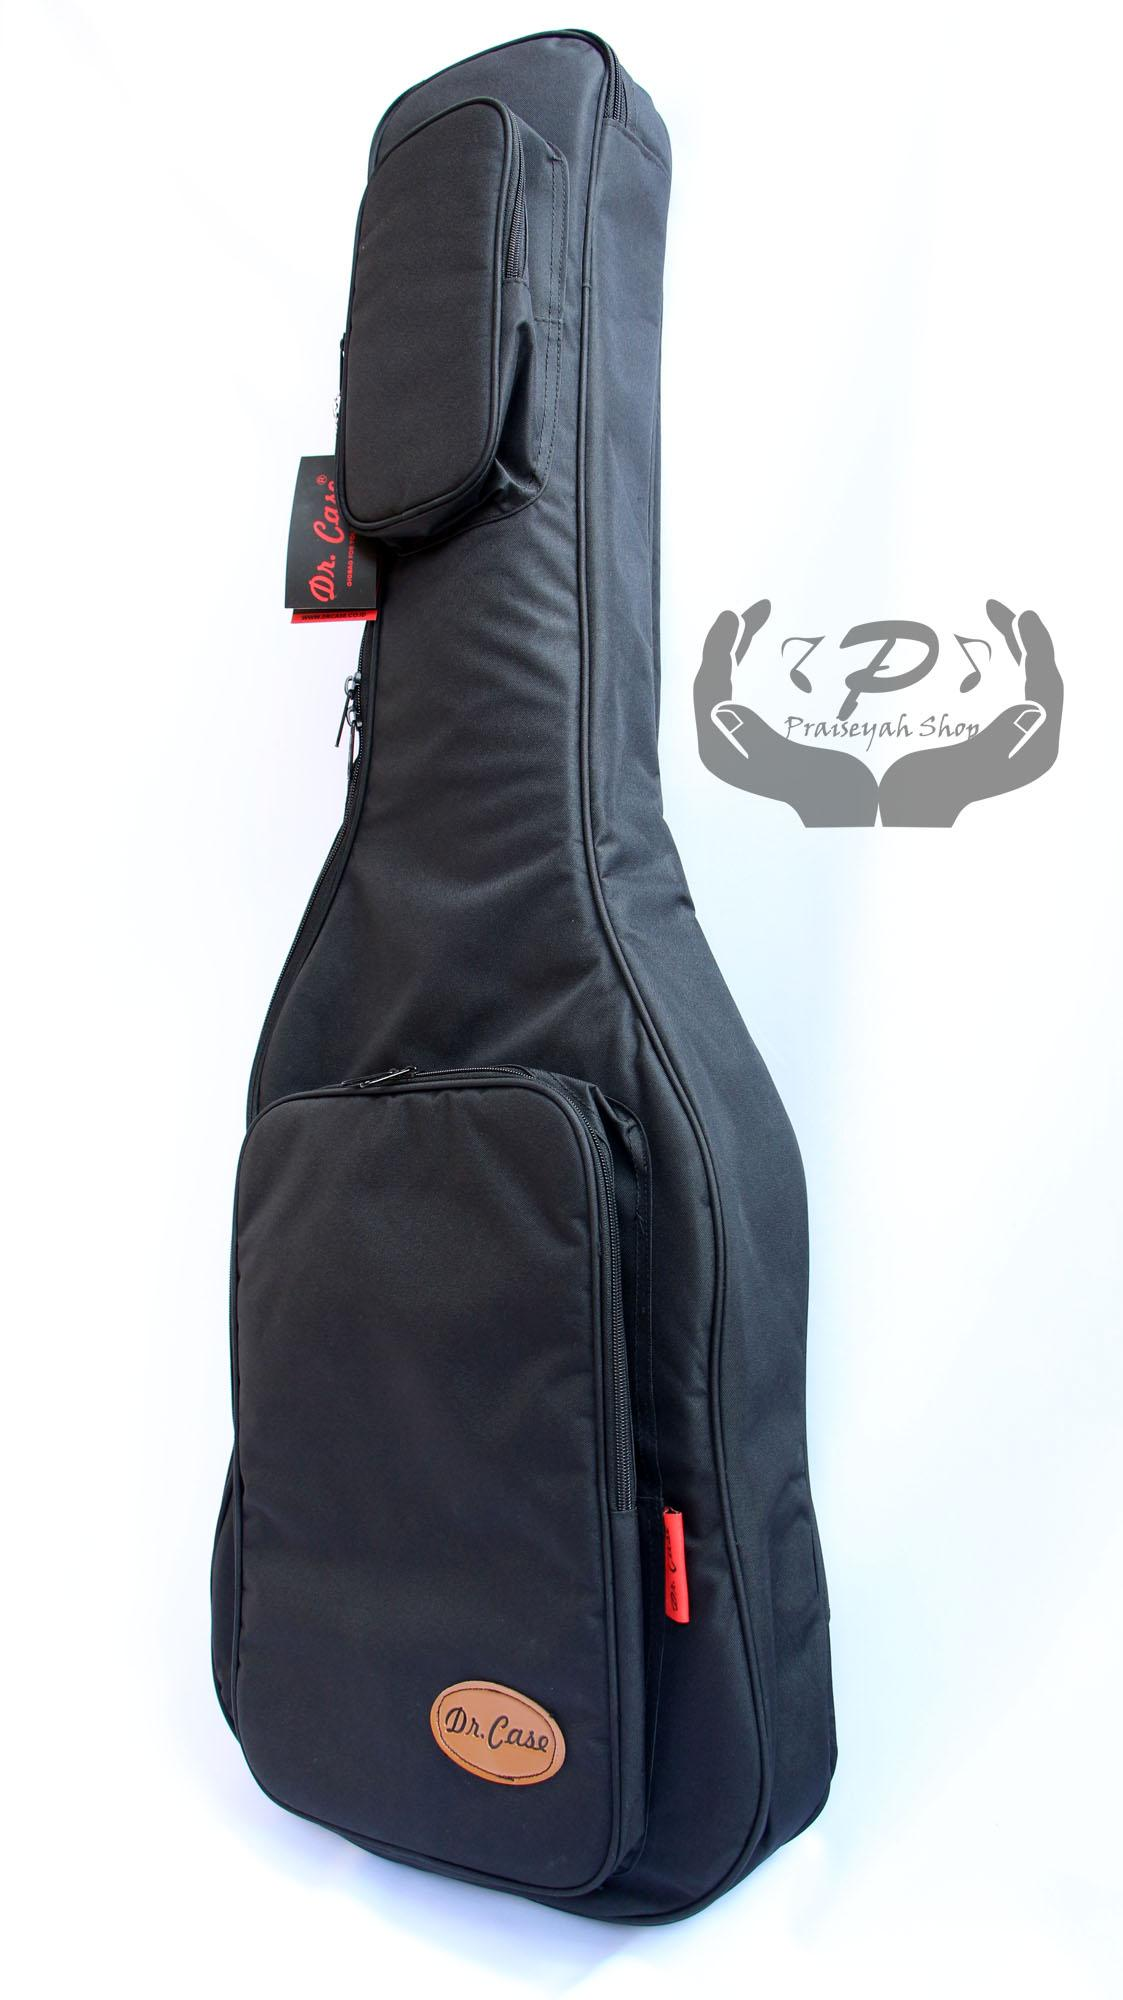 Dr Case Gitar Electrik Daftar Harga Terlengkap Indonesia Cort Cgb31 Guitar Gig Bag Black Elektrik Premier Series Original Hitam Electric